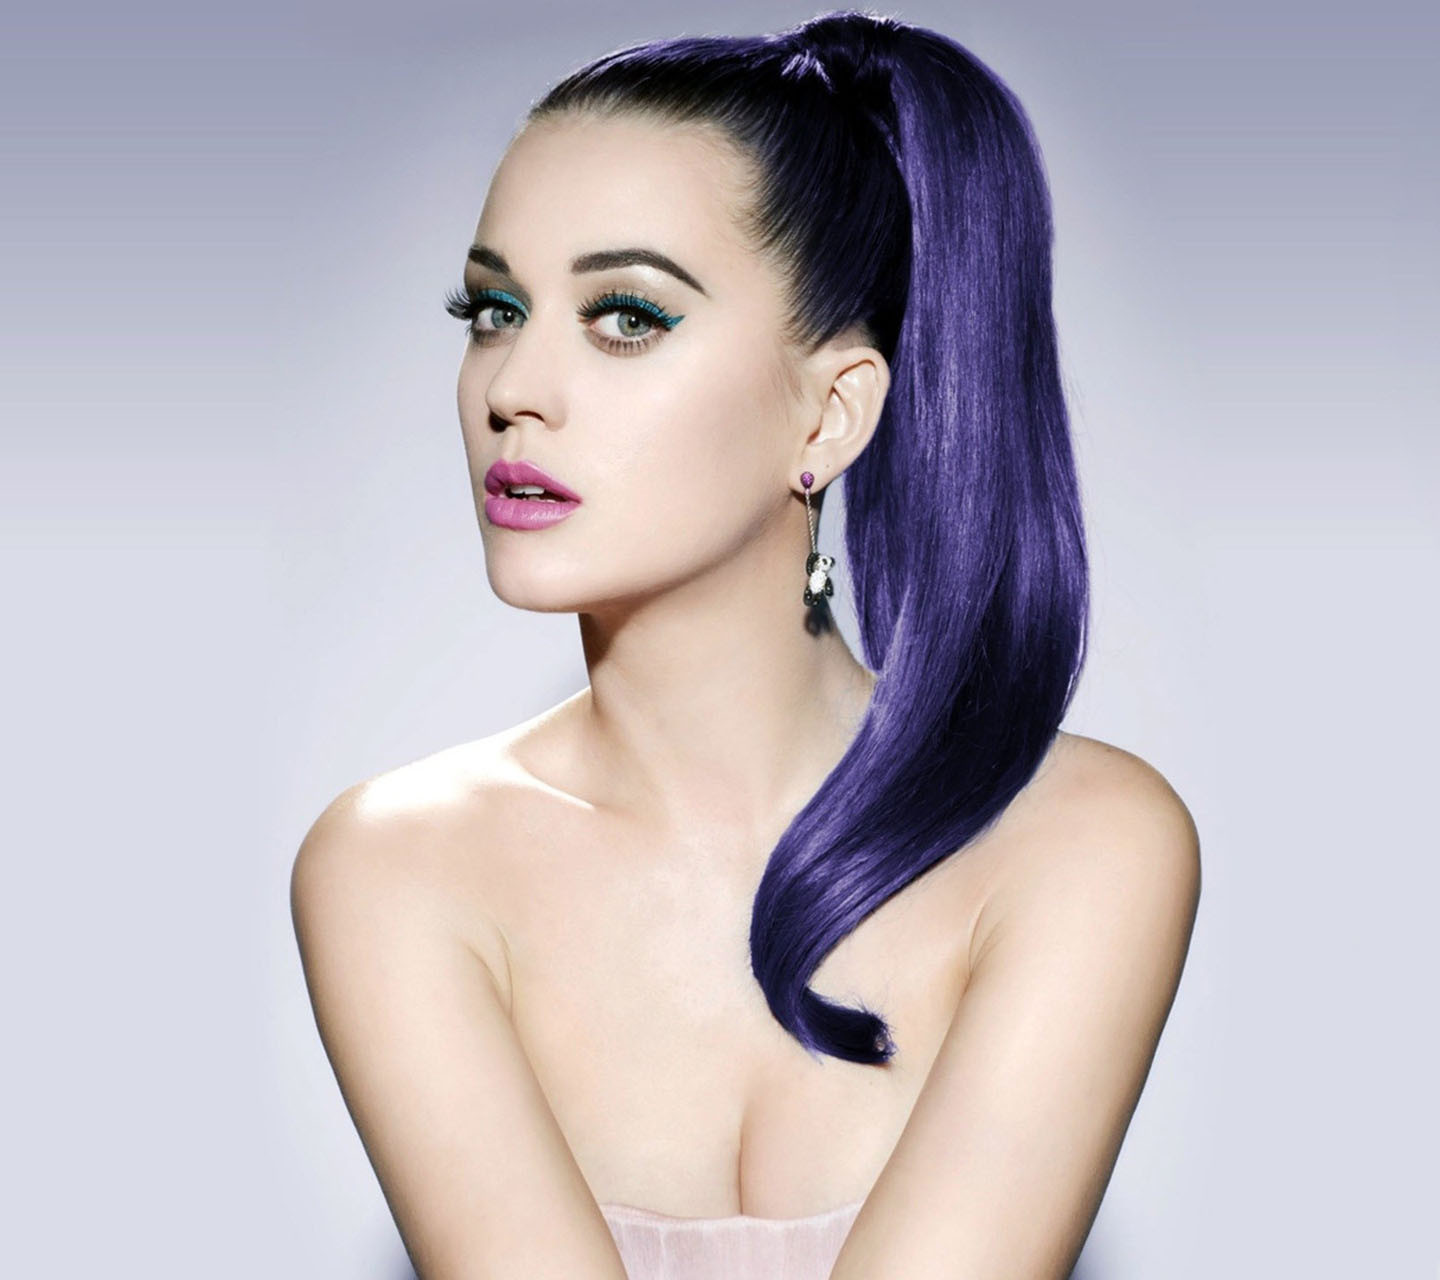 katy perry fotos 11